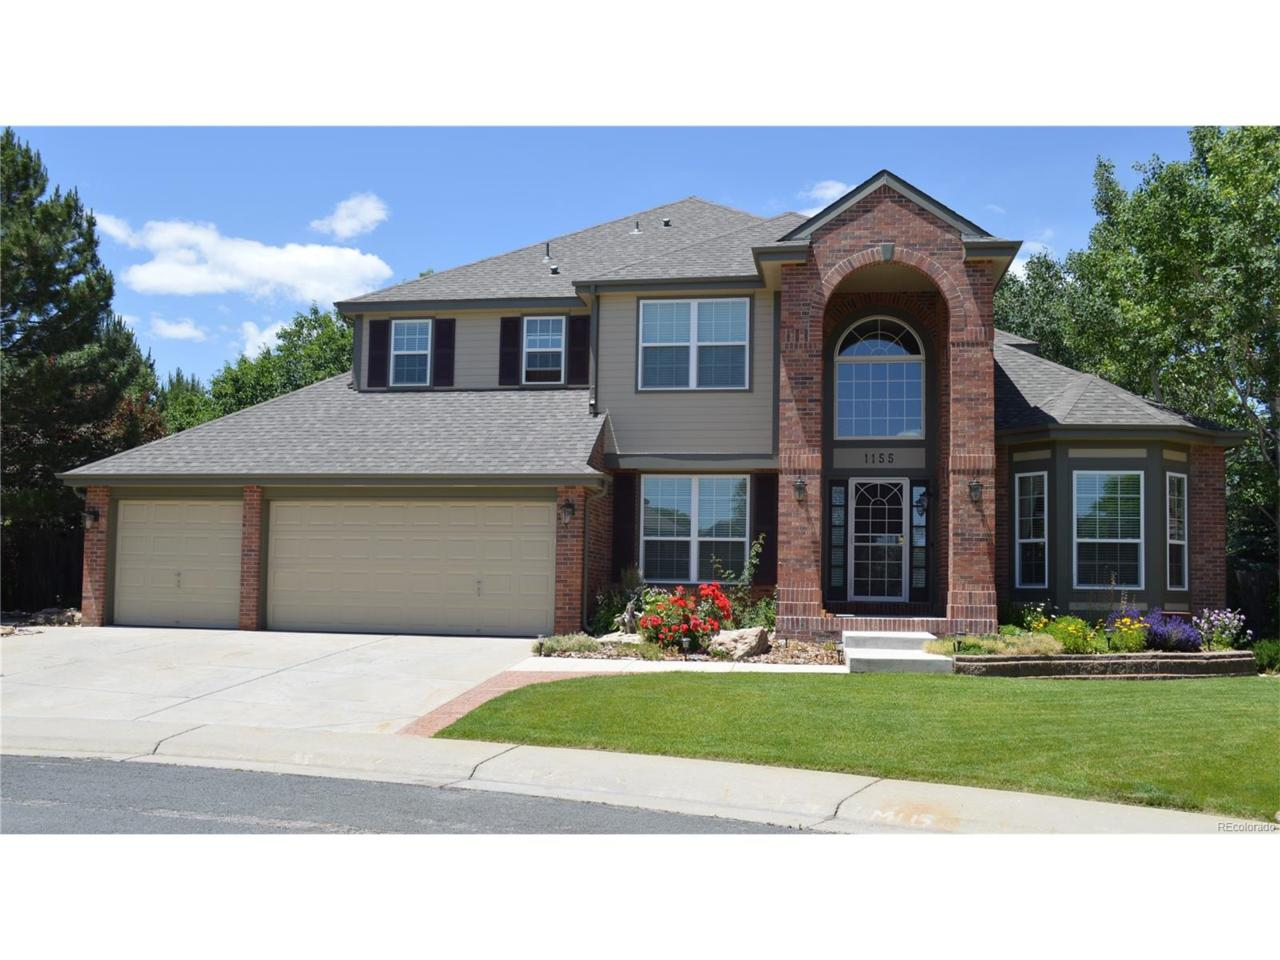 1155 W 125th Drive, Westminster, CO 80234 (MLS #5942438) :: 8z Real Estate